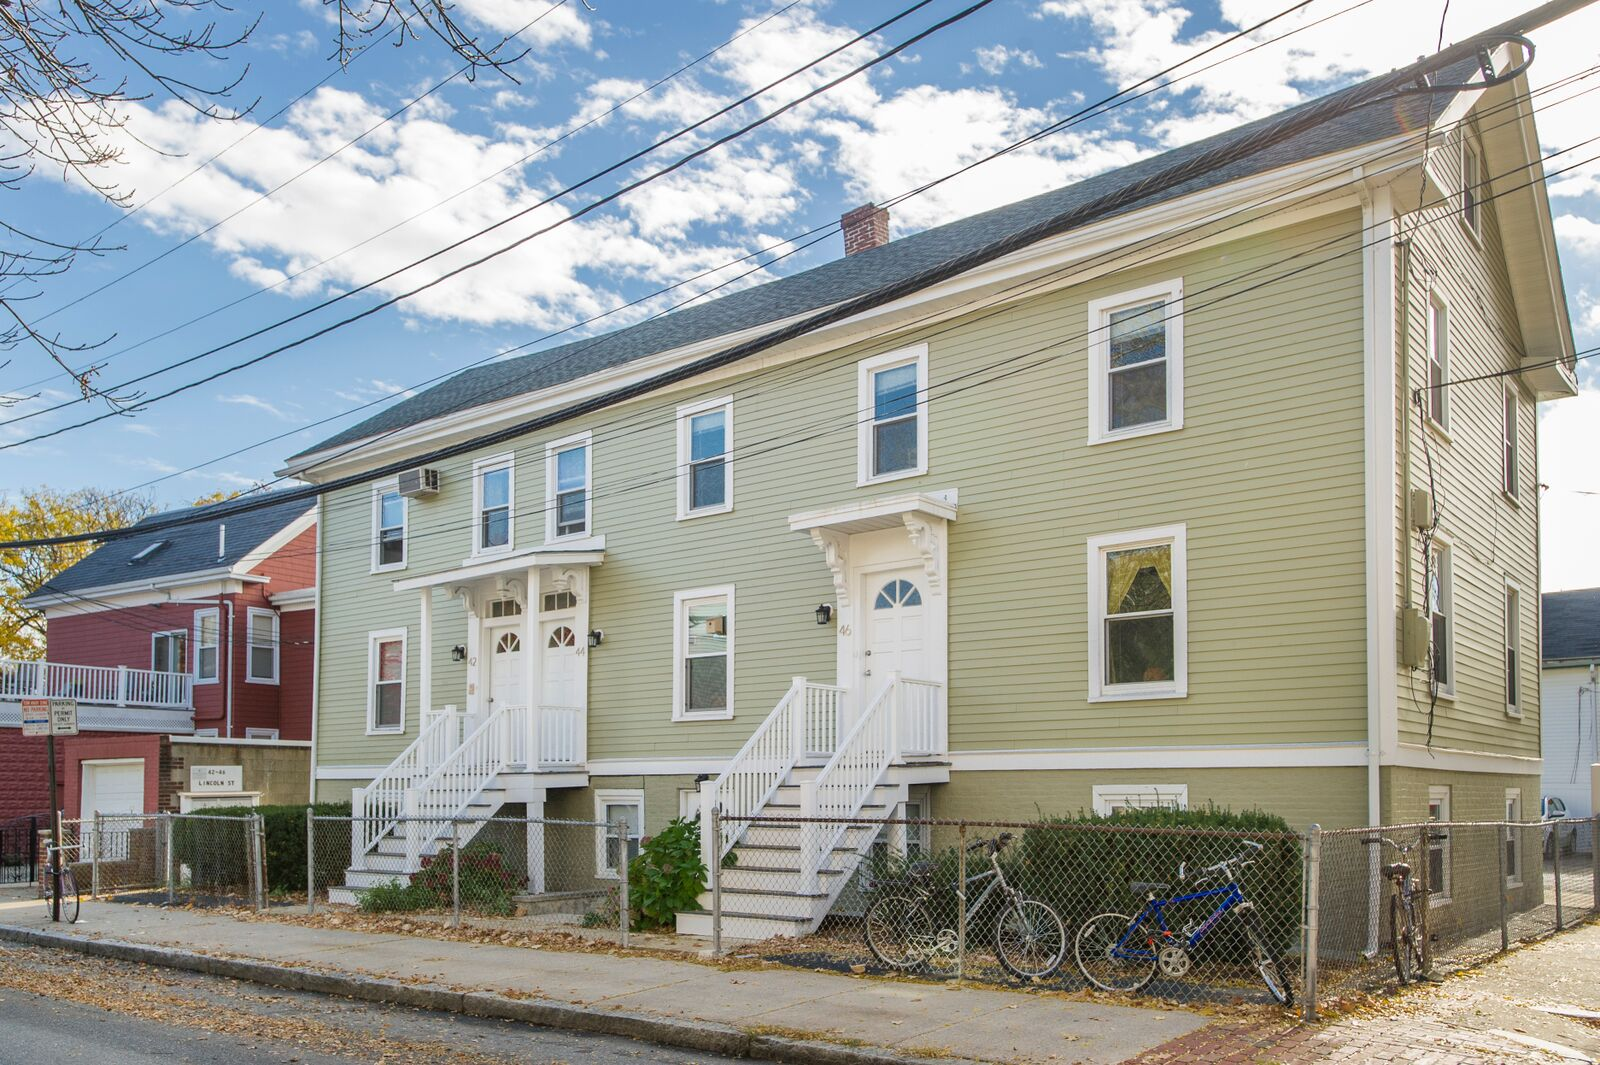 42-46 Lincoln STREET - CAMBRIDGE, MA